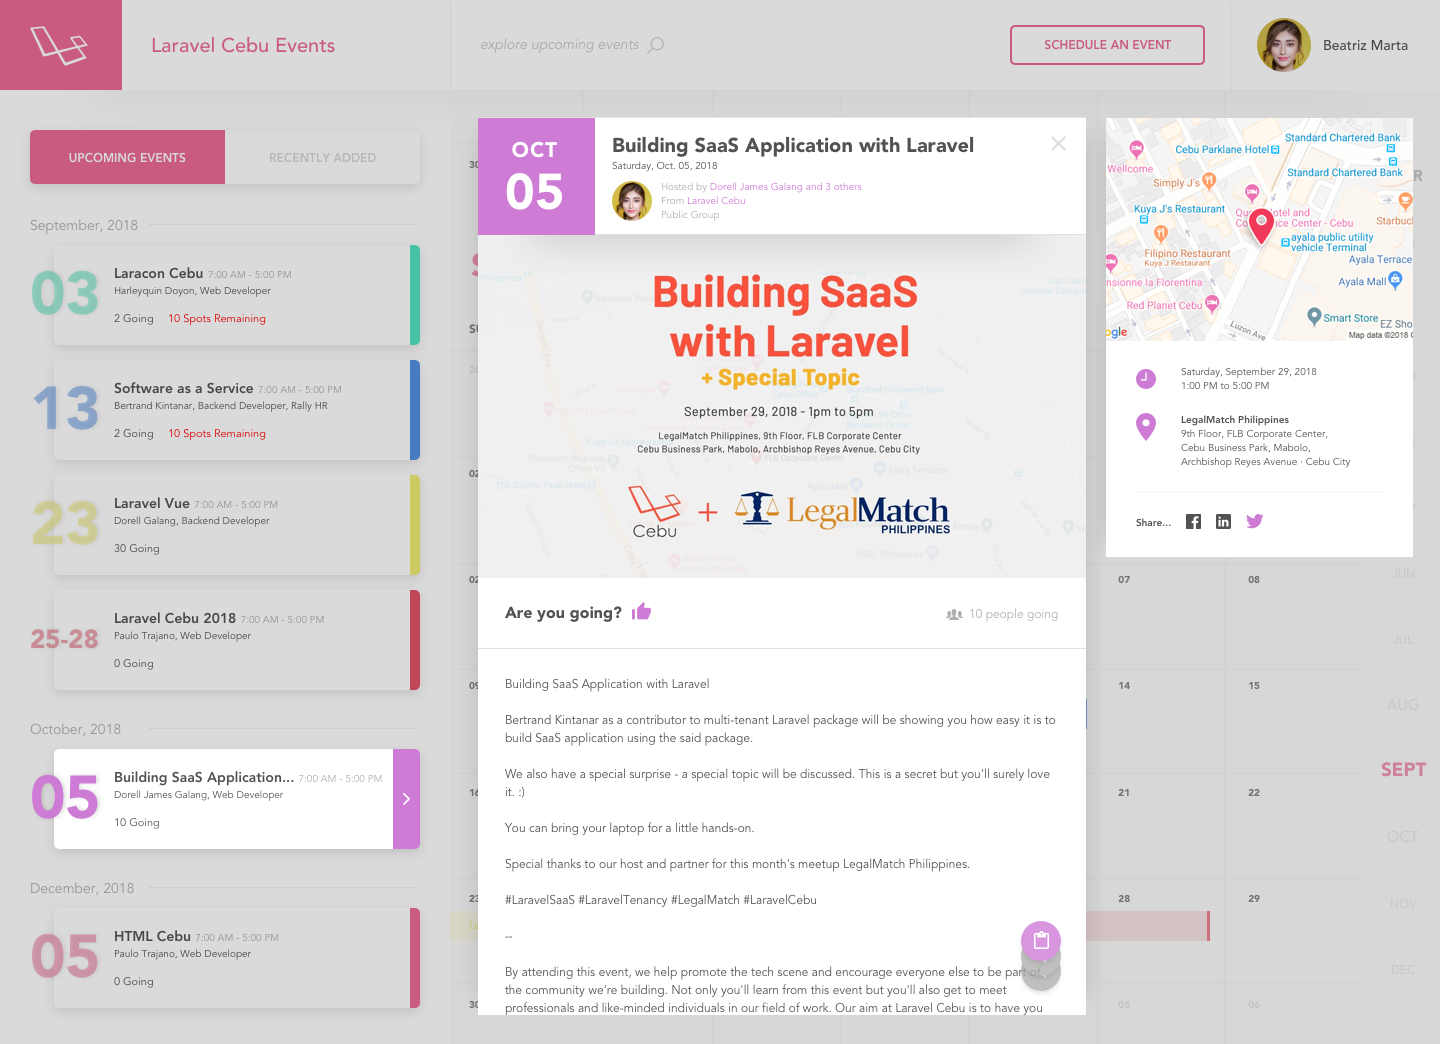 Paulo Trajano / Projects / Laravel Cebu | Dribbble